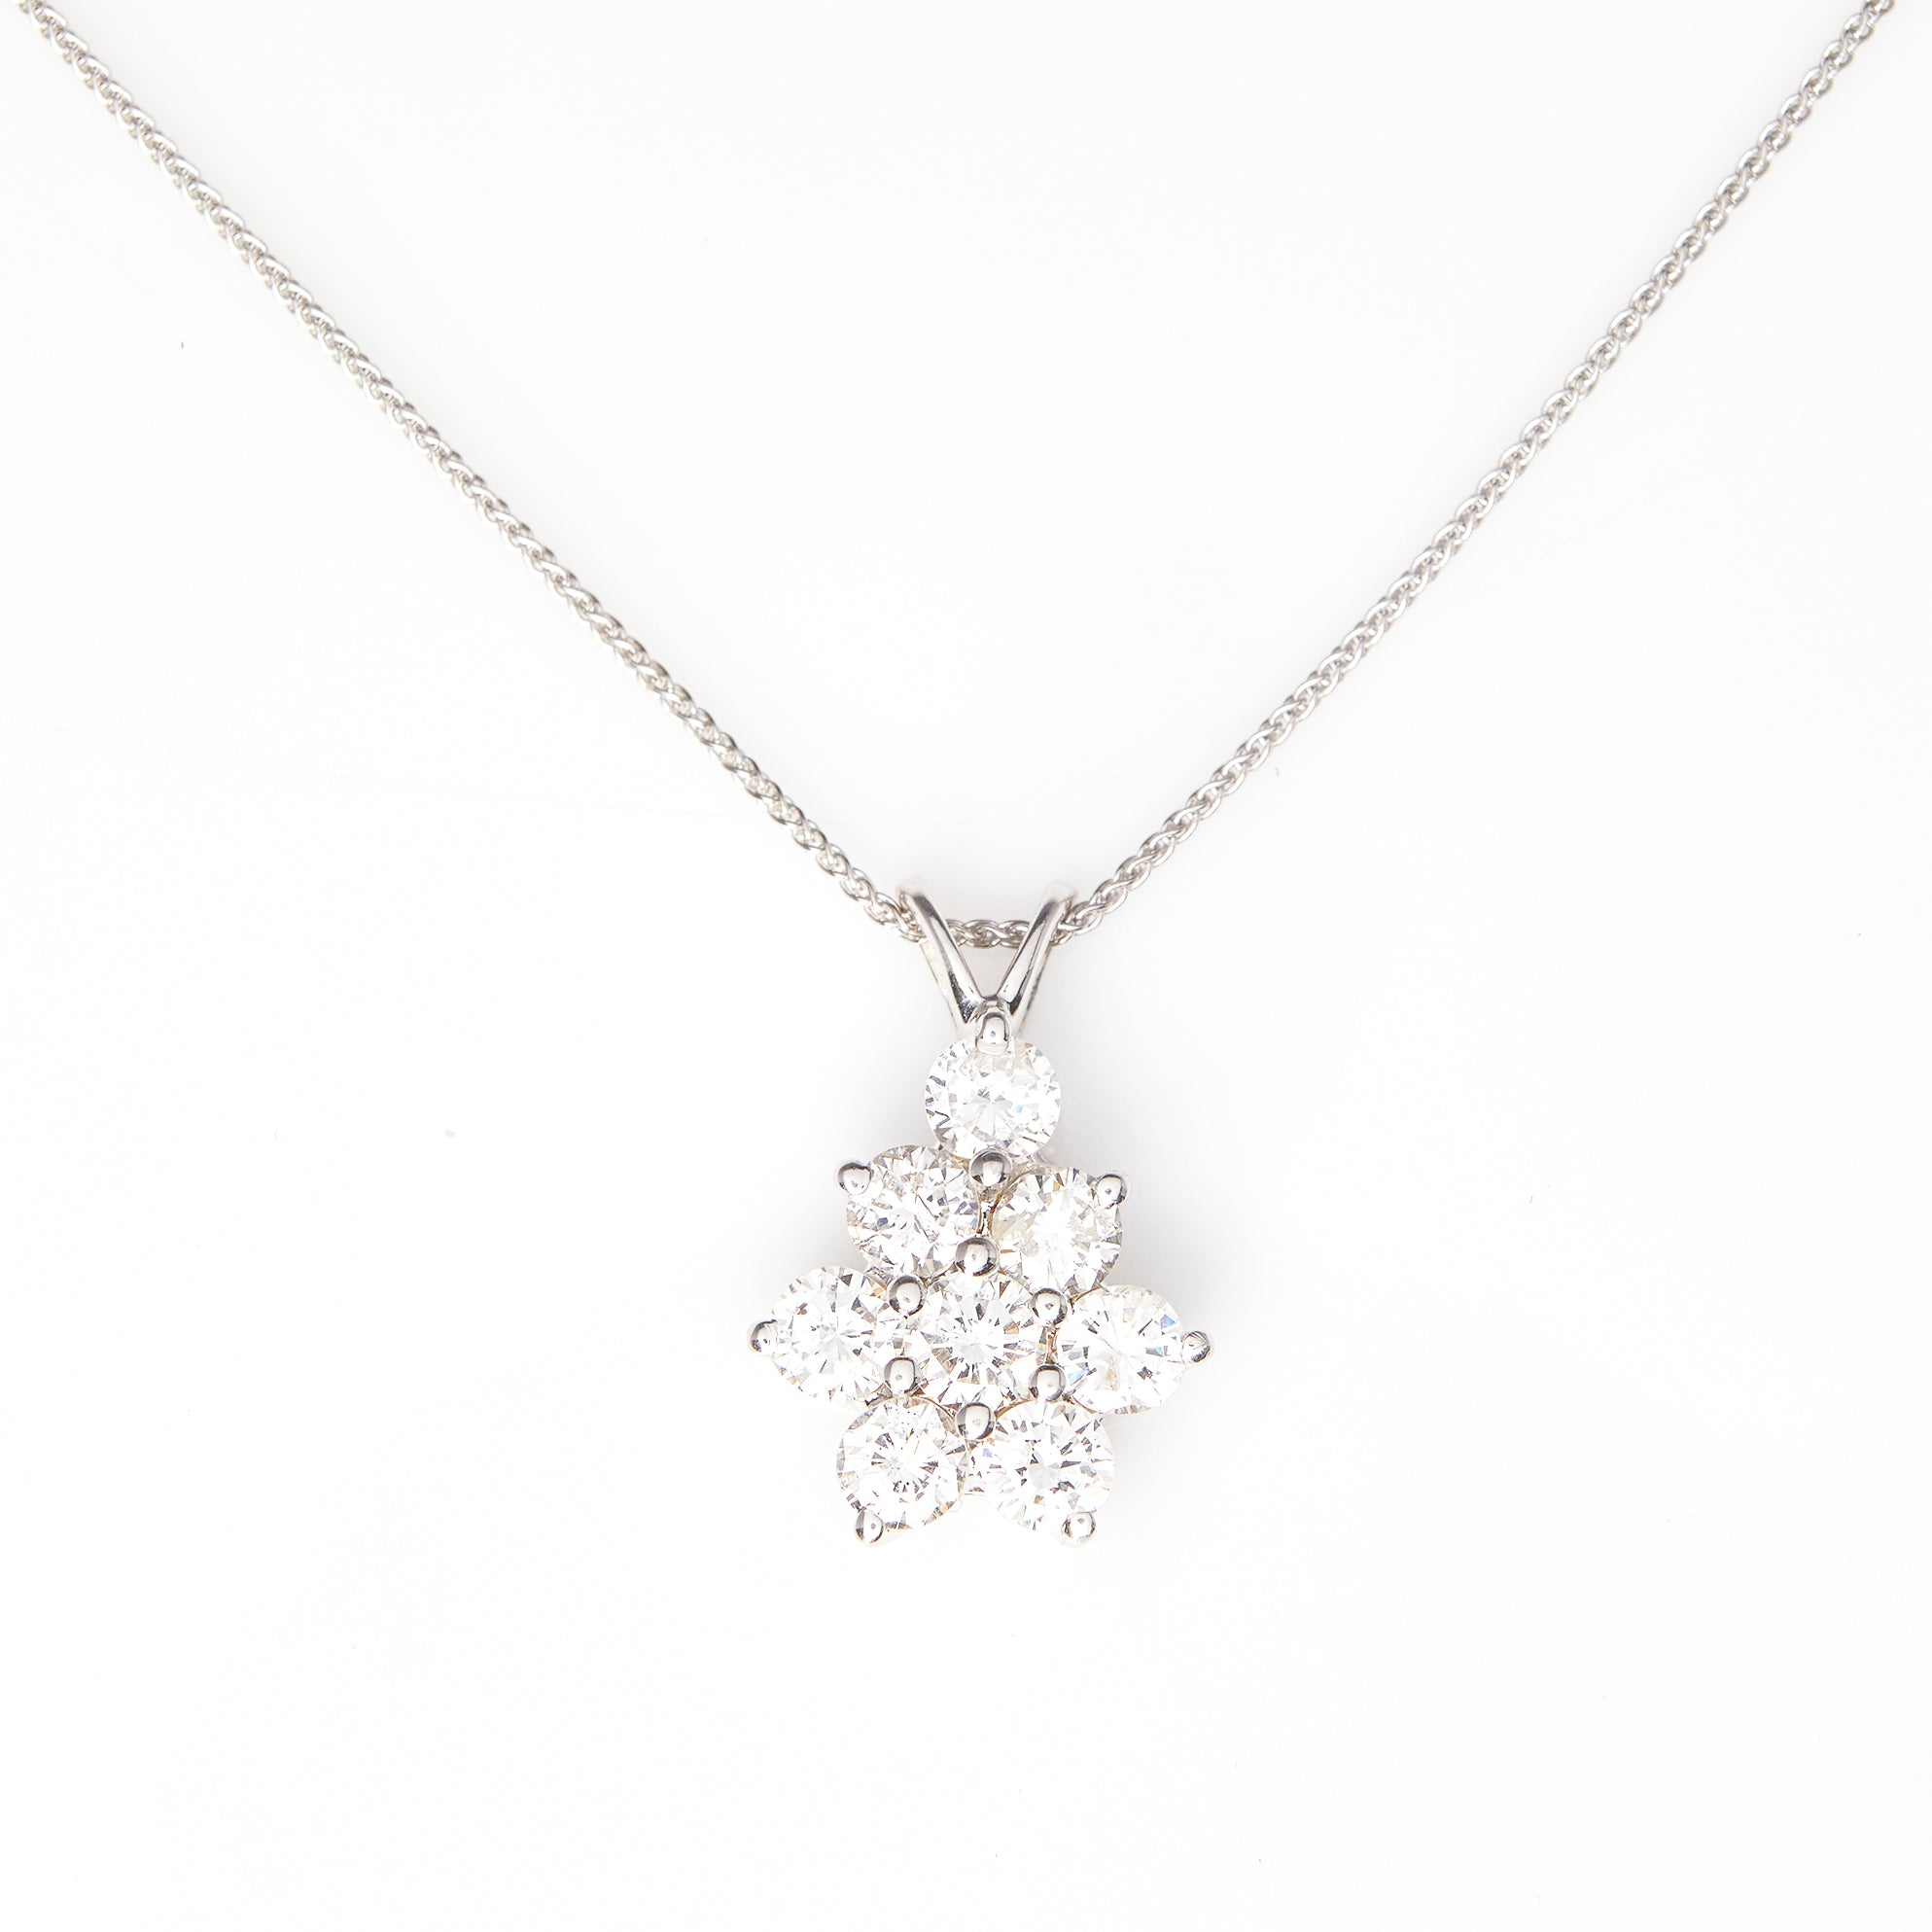 Diamond Cluster in White Gold Necklace - Sindur